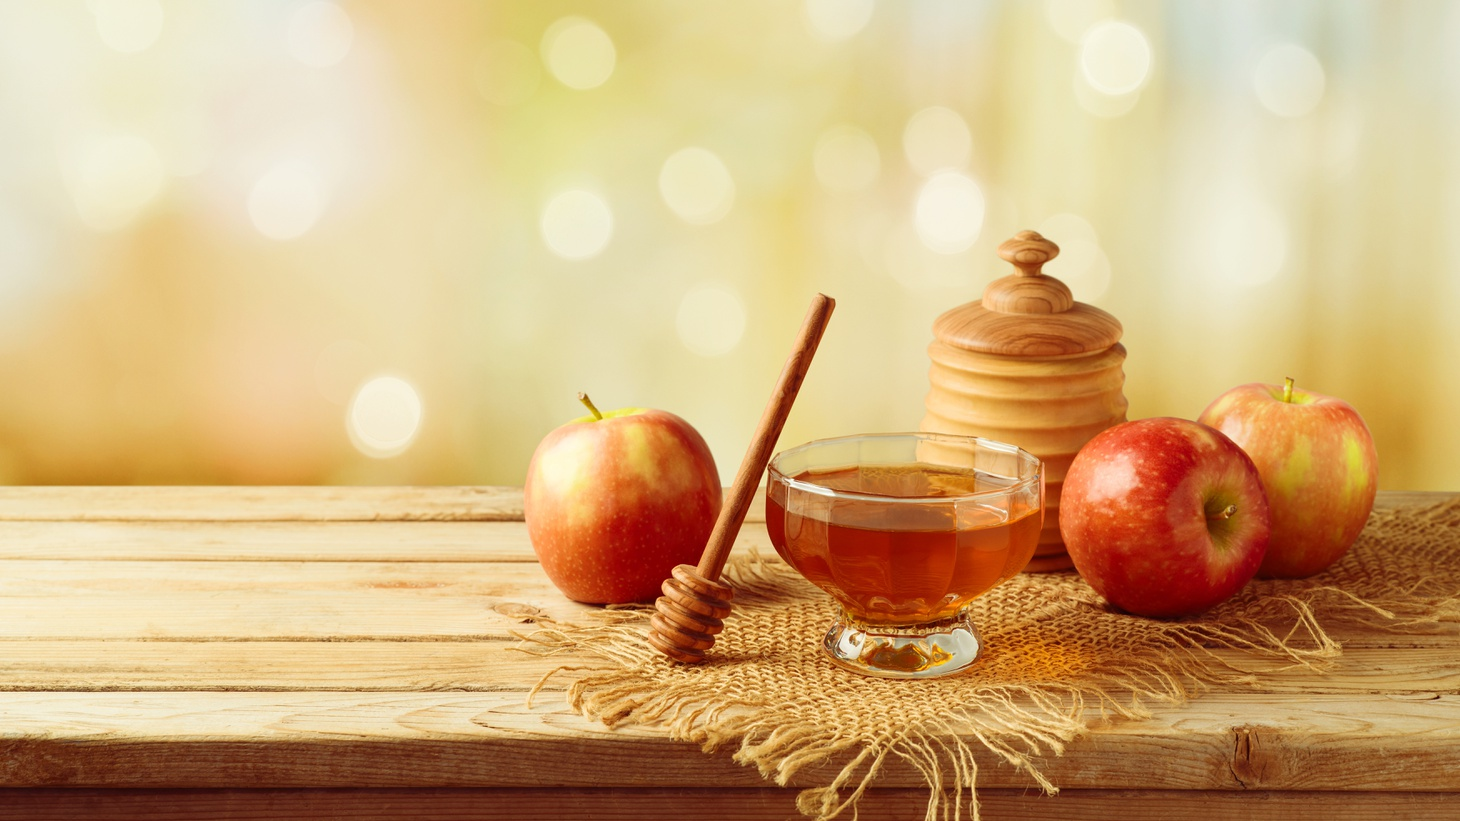 Rosh Hashanah involves the tradition of eating apples and honey to ensure a sweet new year.